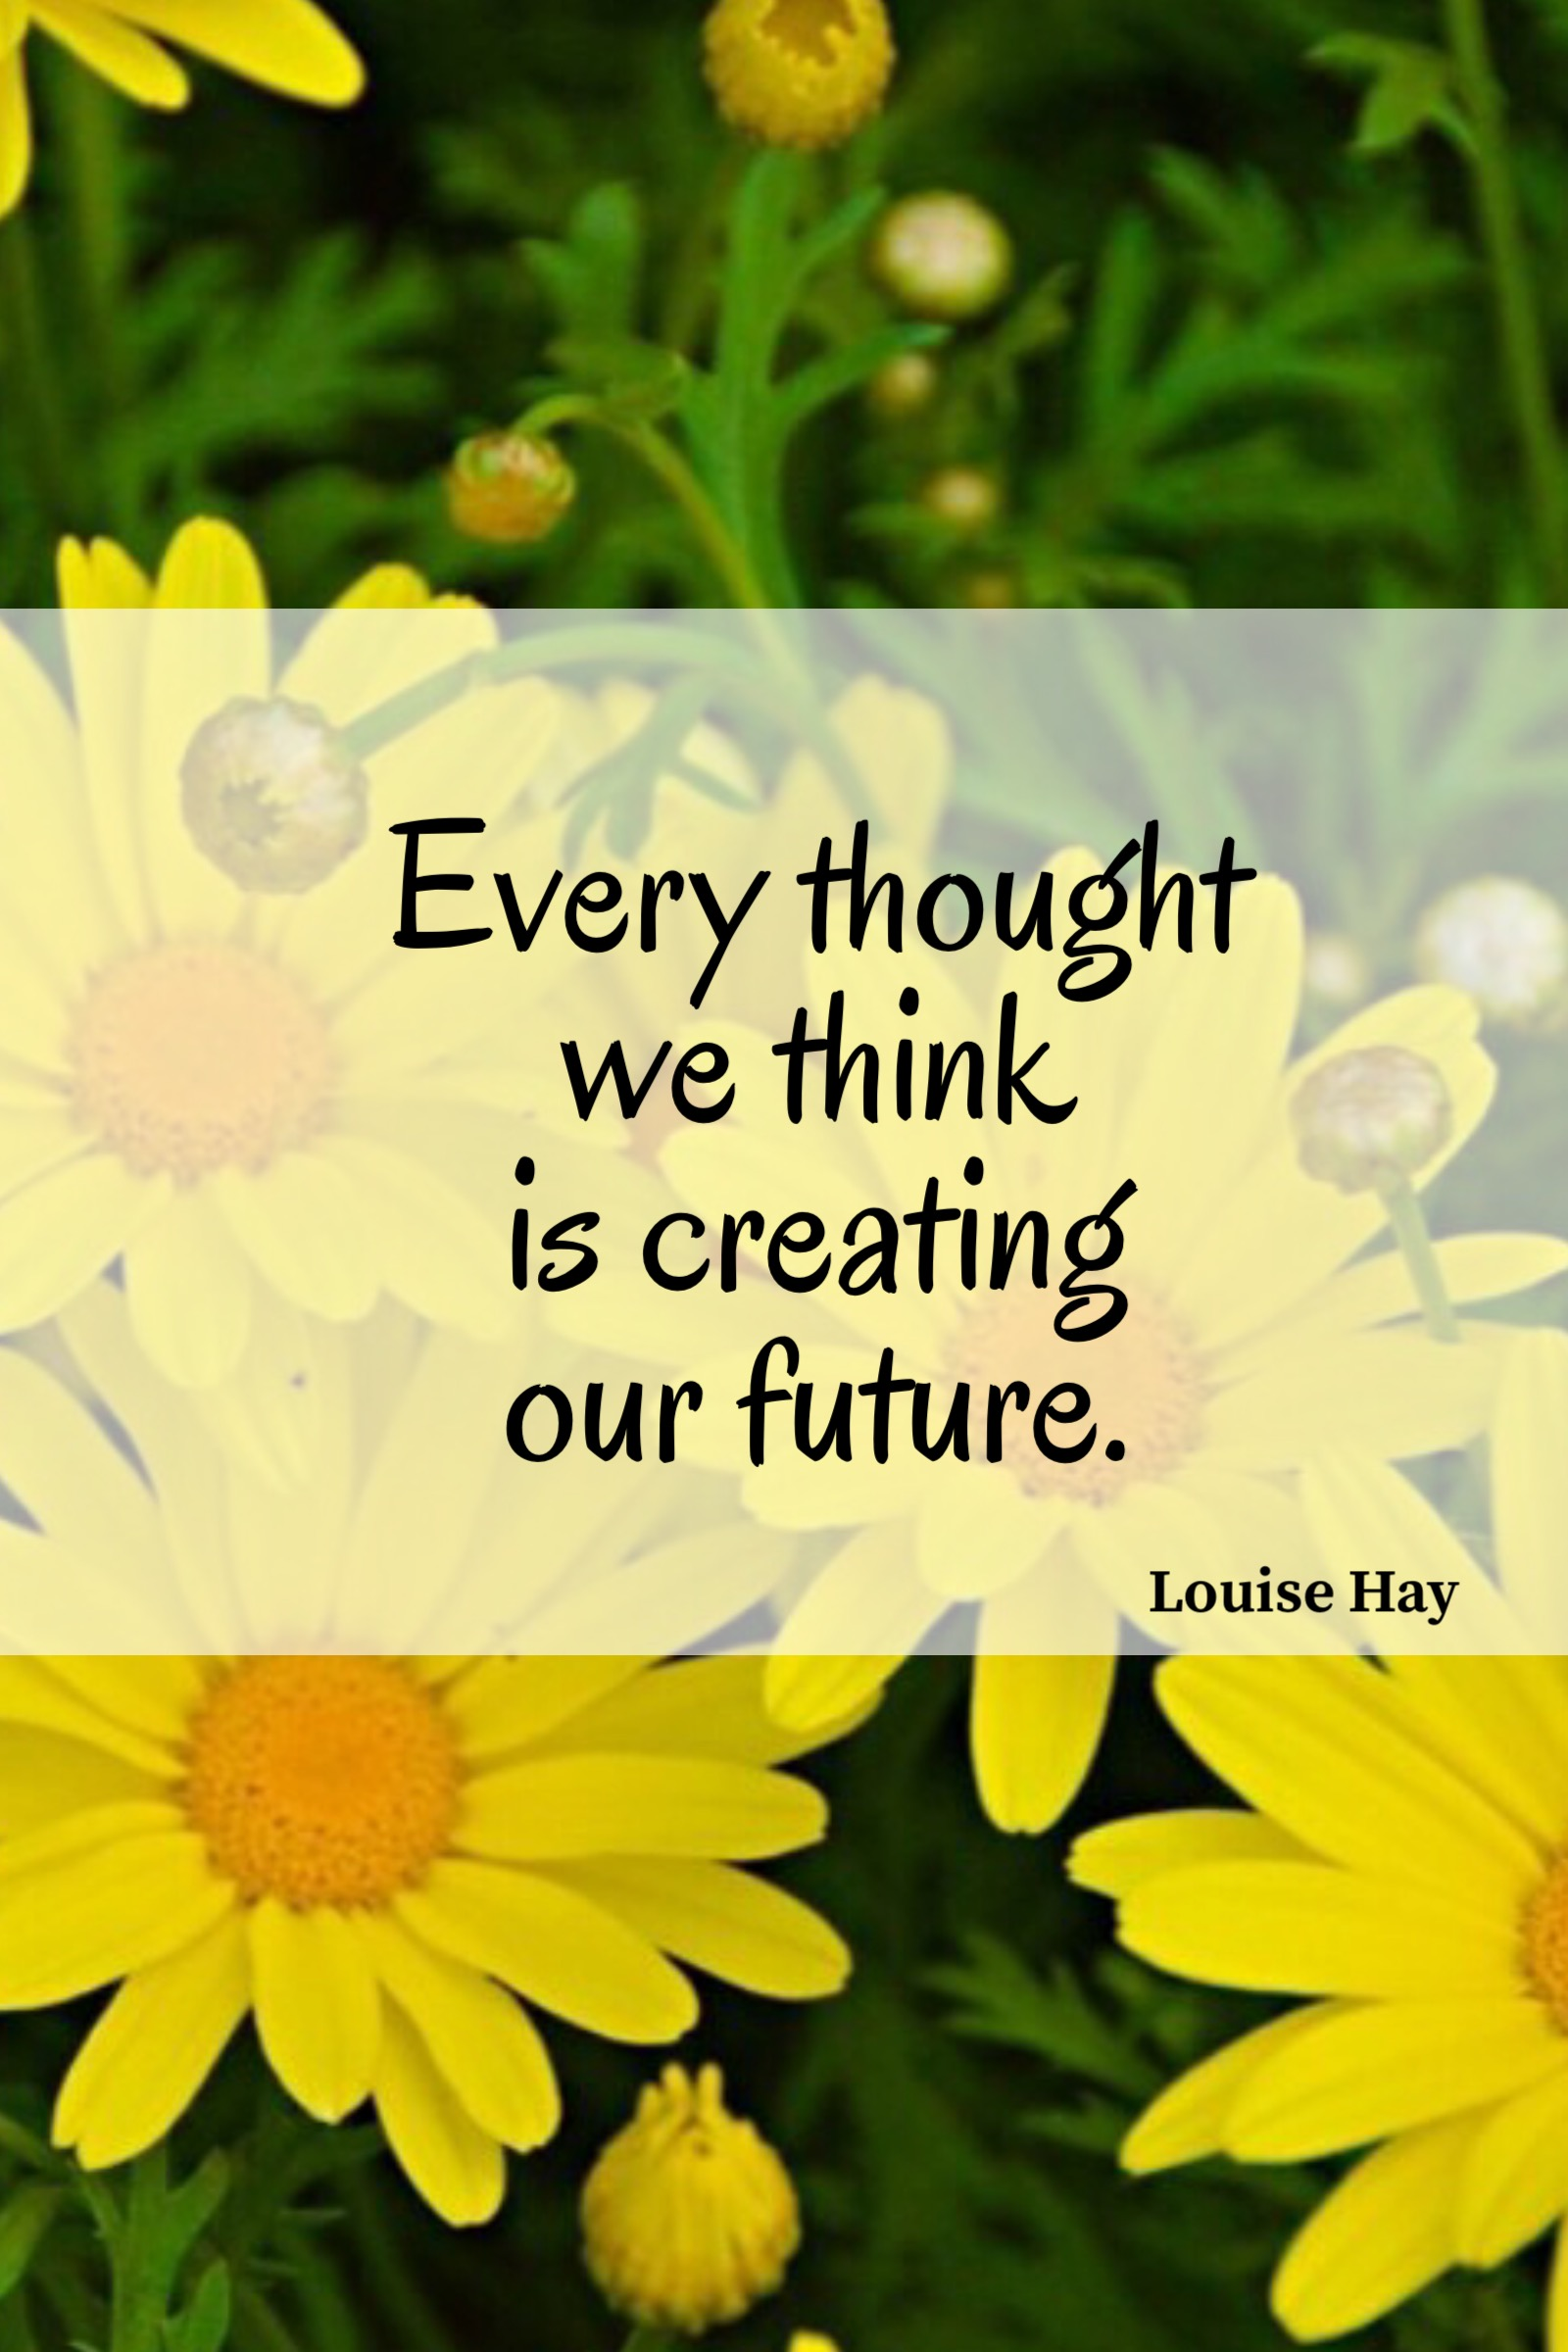 Thoughts create our future